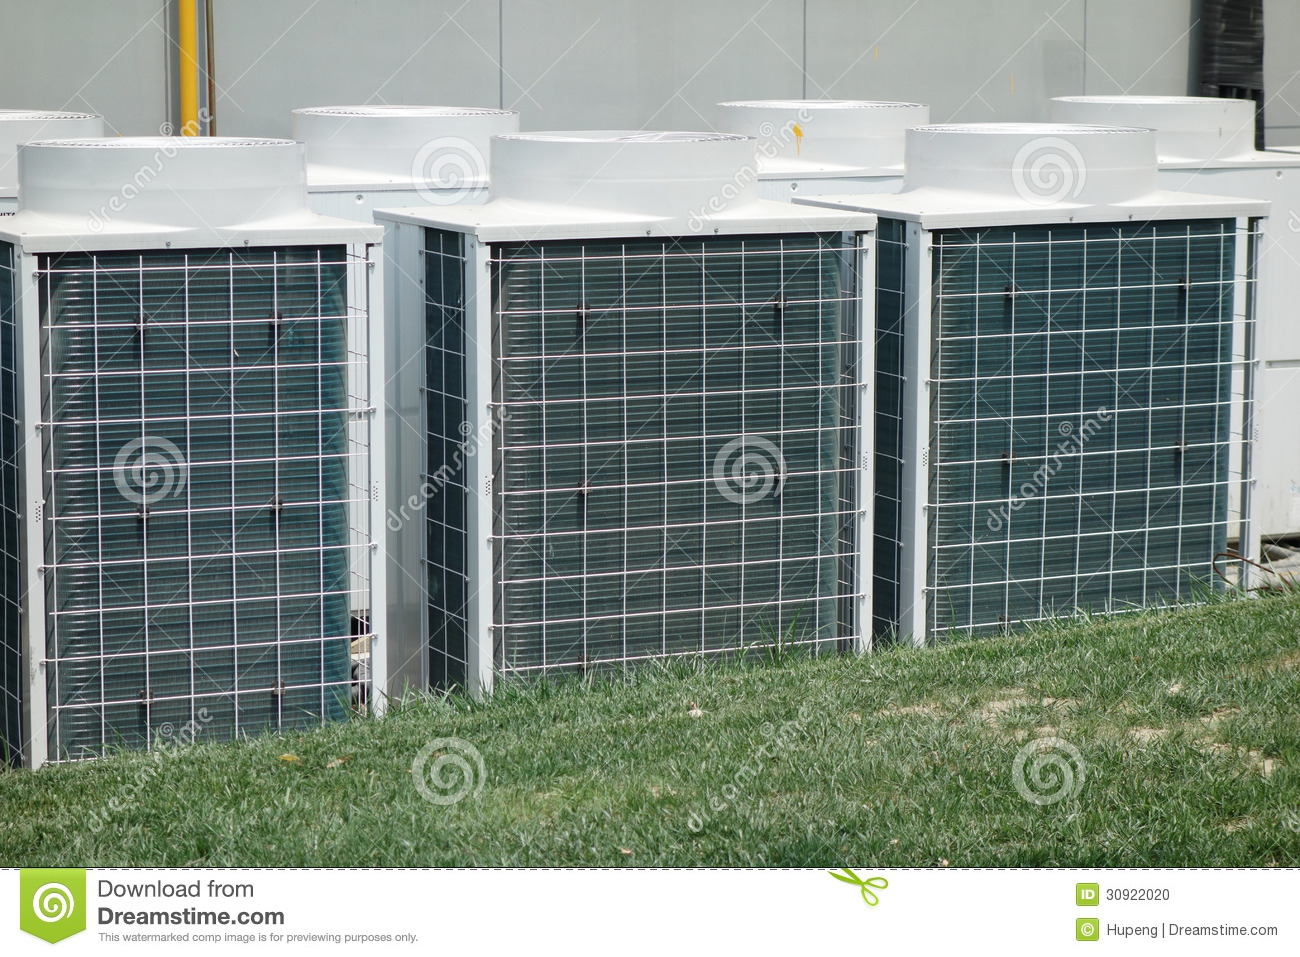 #77814A Air Conditioner Unit Stock Photo Image: 30922020 Most Effective 10755 Air Conditioning Condensing Units pictures with 1300x957 px on helpvideos.info - Air Conditioners, Air Coolers and more